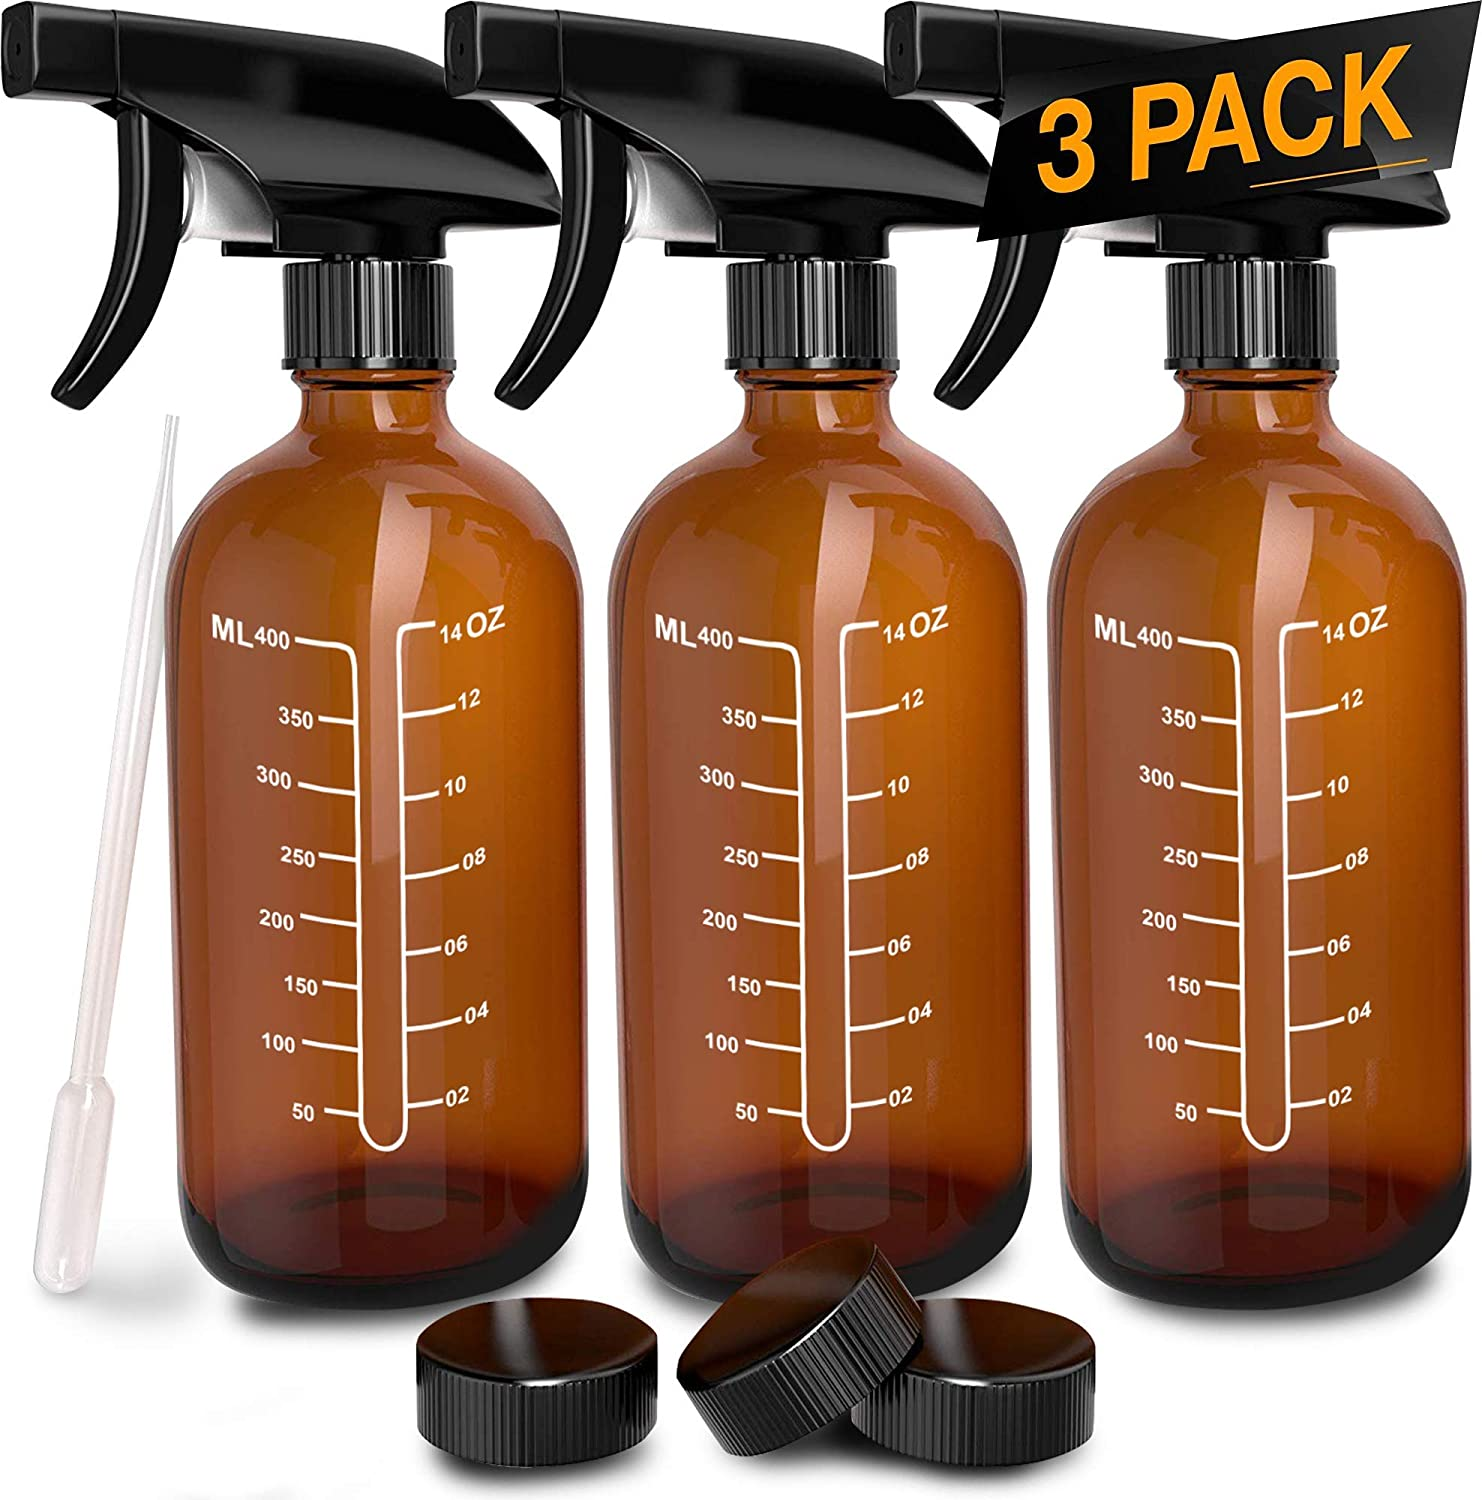 3 Pack – Refillable Empty Amber Glass Spray Bottles Free Phenolic Cap and Pipette for Cleaning Solutions, Hair, Essential Oils, Plants – Trigger Sprayer with Mist and Single Mode 16 OZ